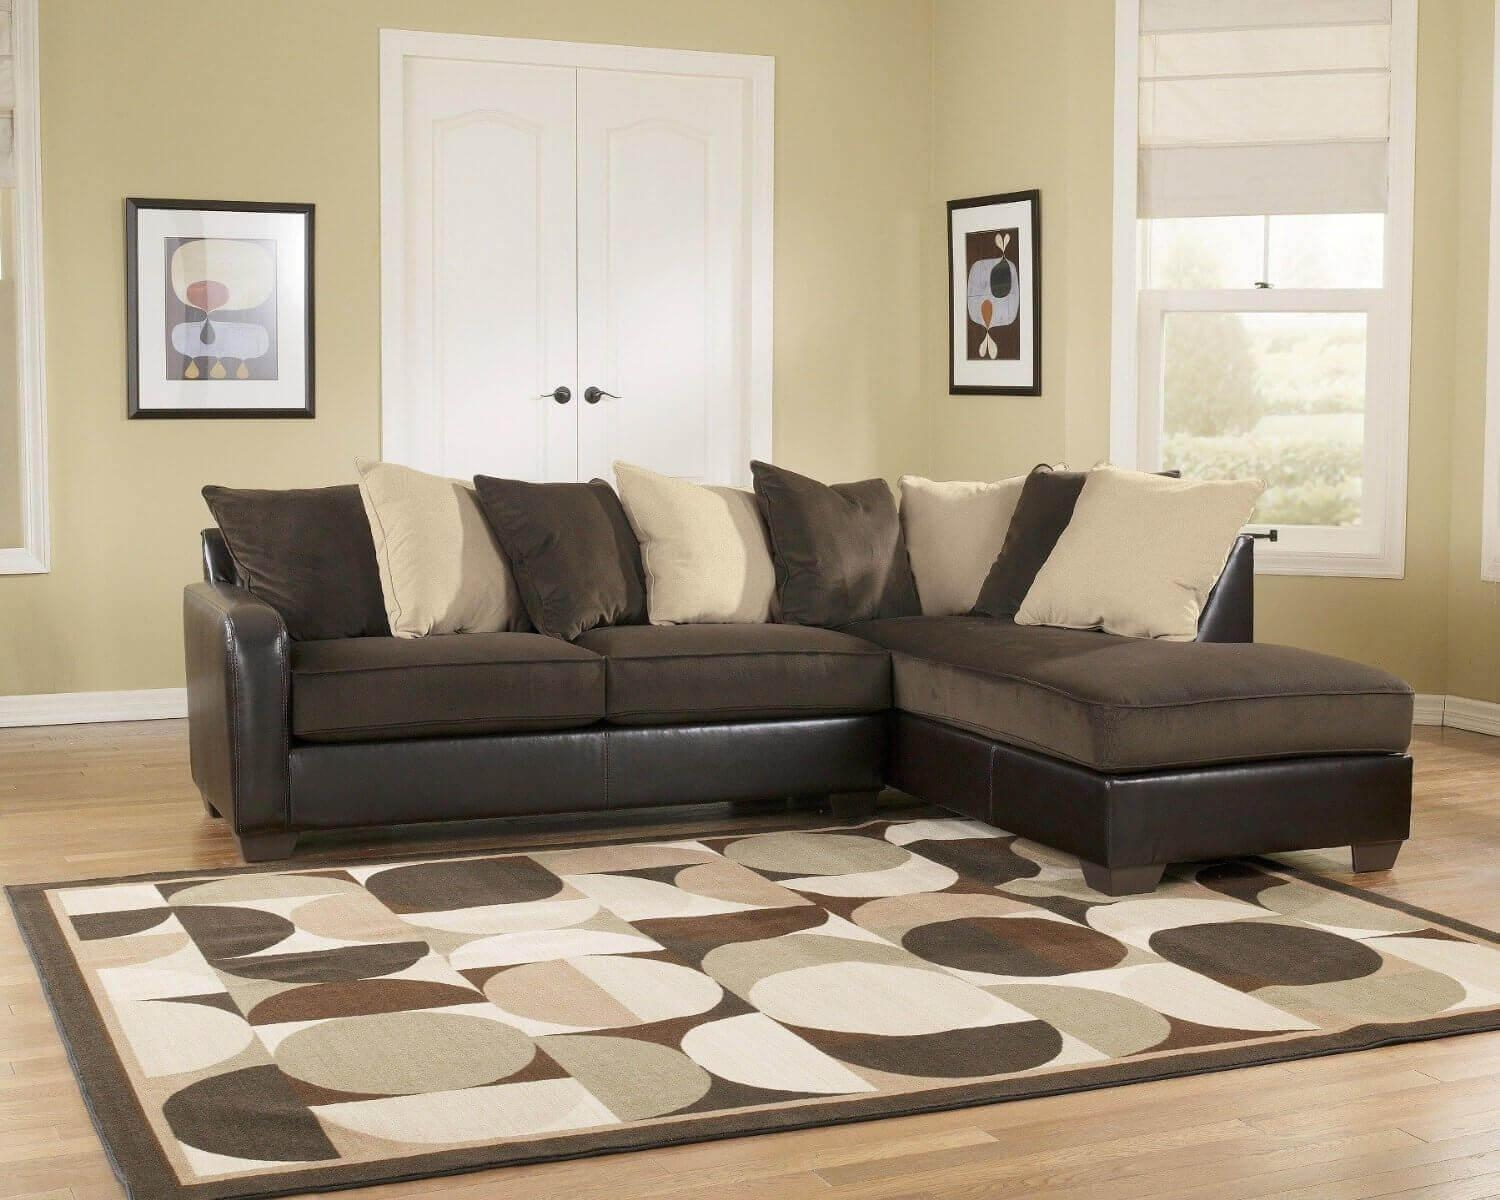 Sofas Under 500 With Regard To Individual Piece Sectional Sofas (View 3 of 20)